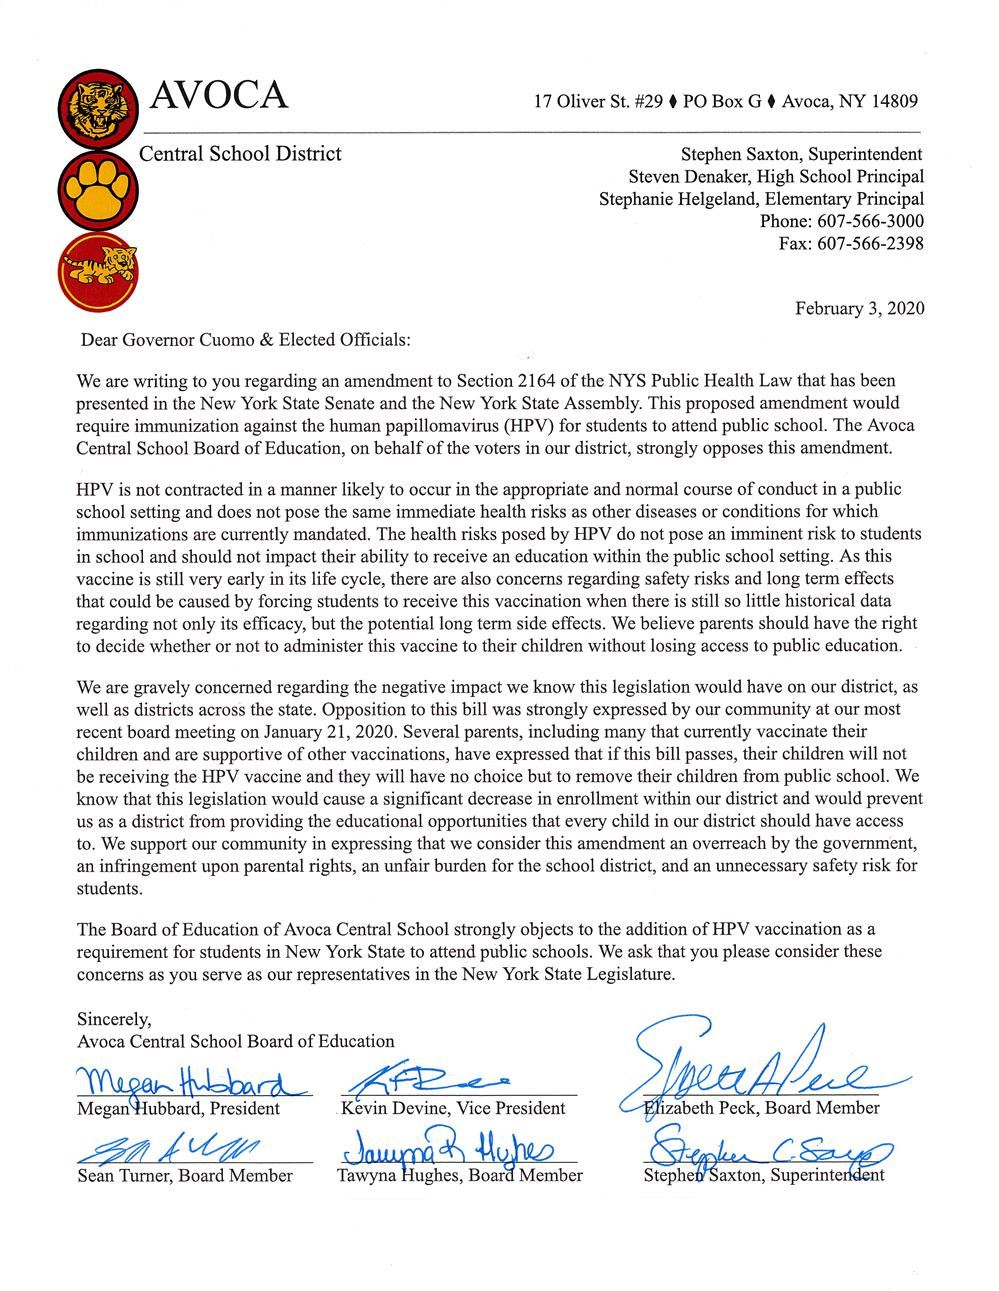 Board of Education Letter to Elected Officials